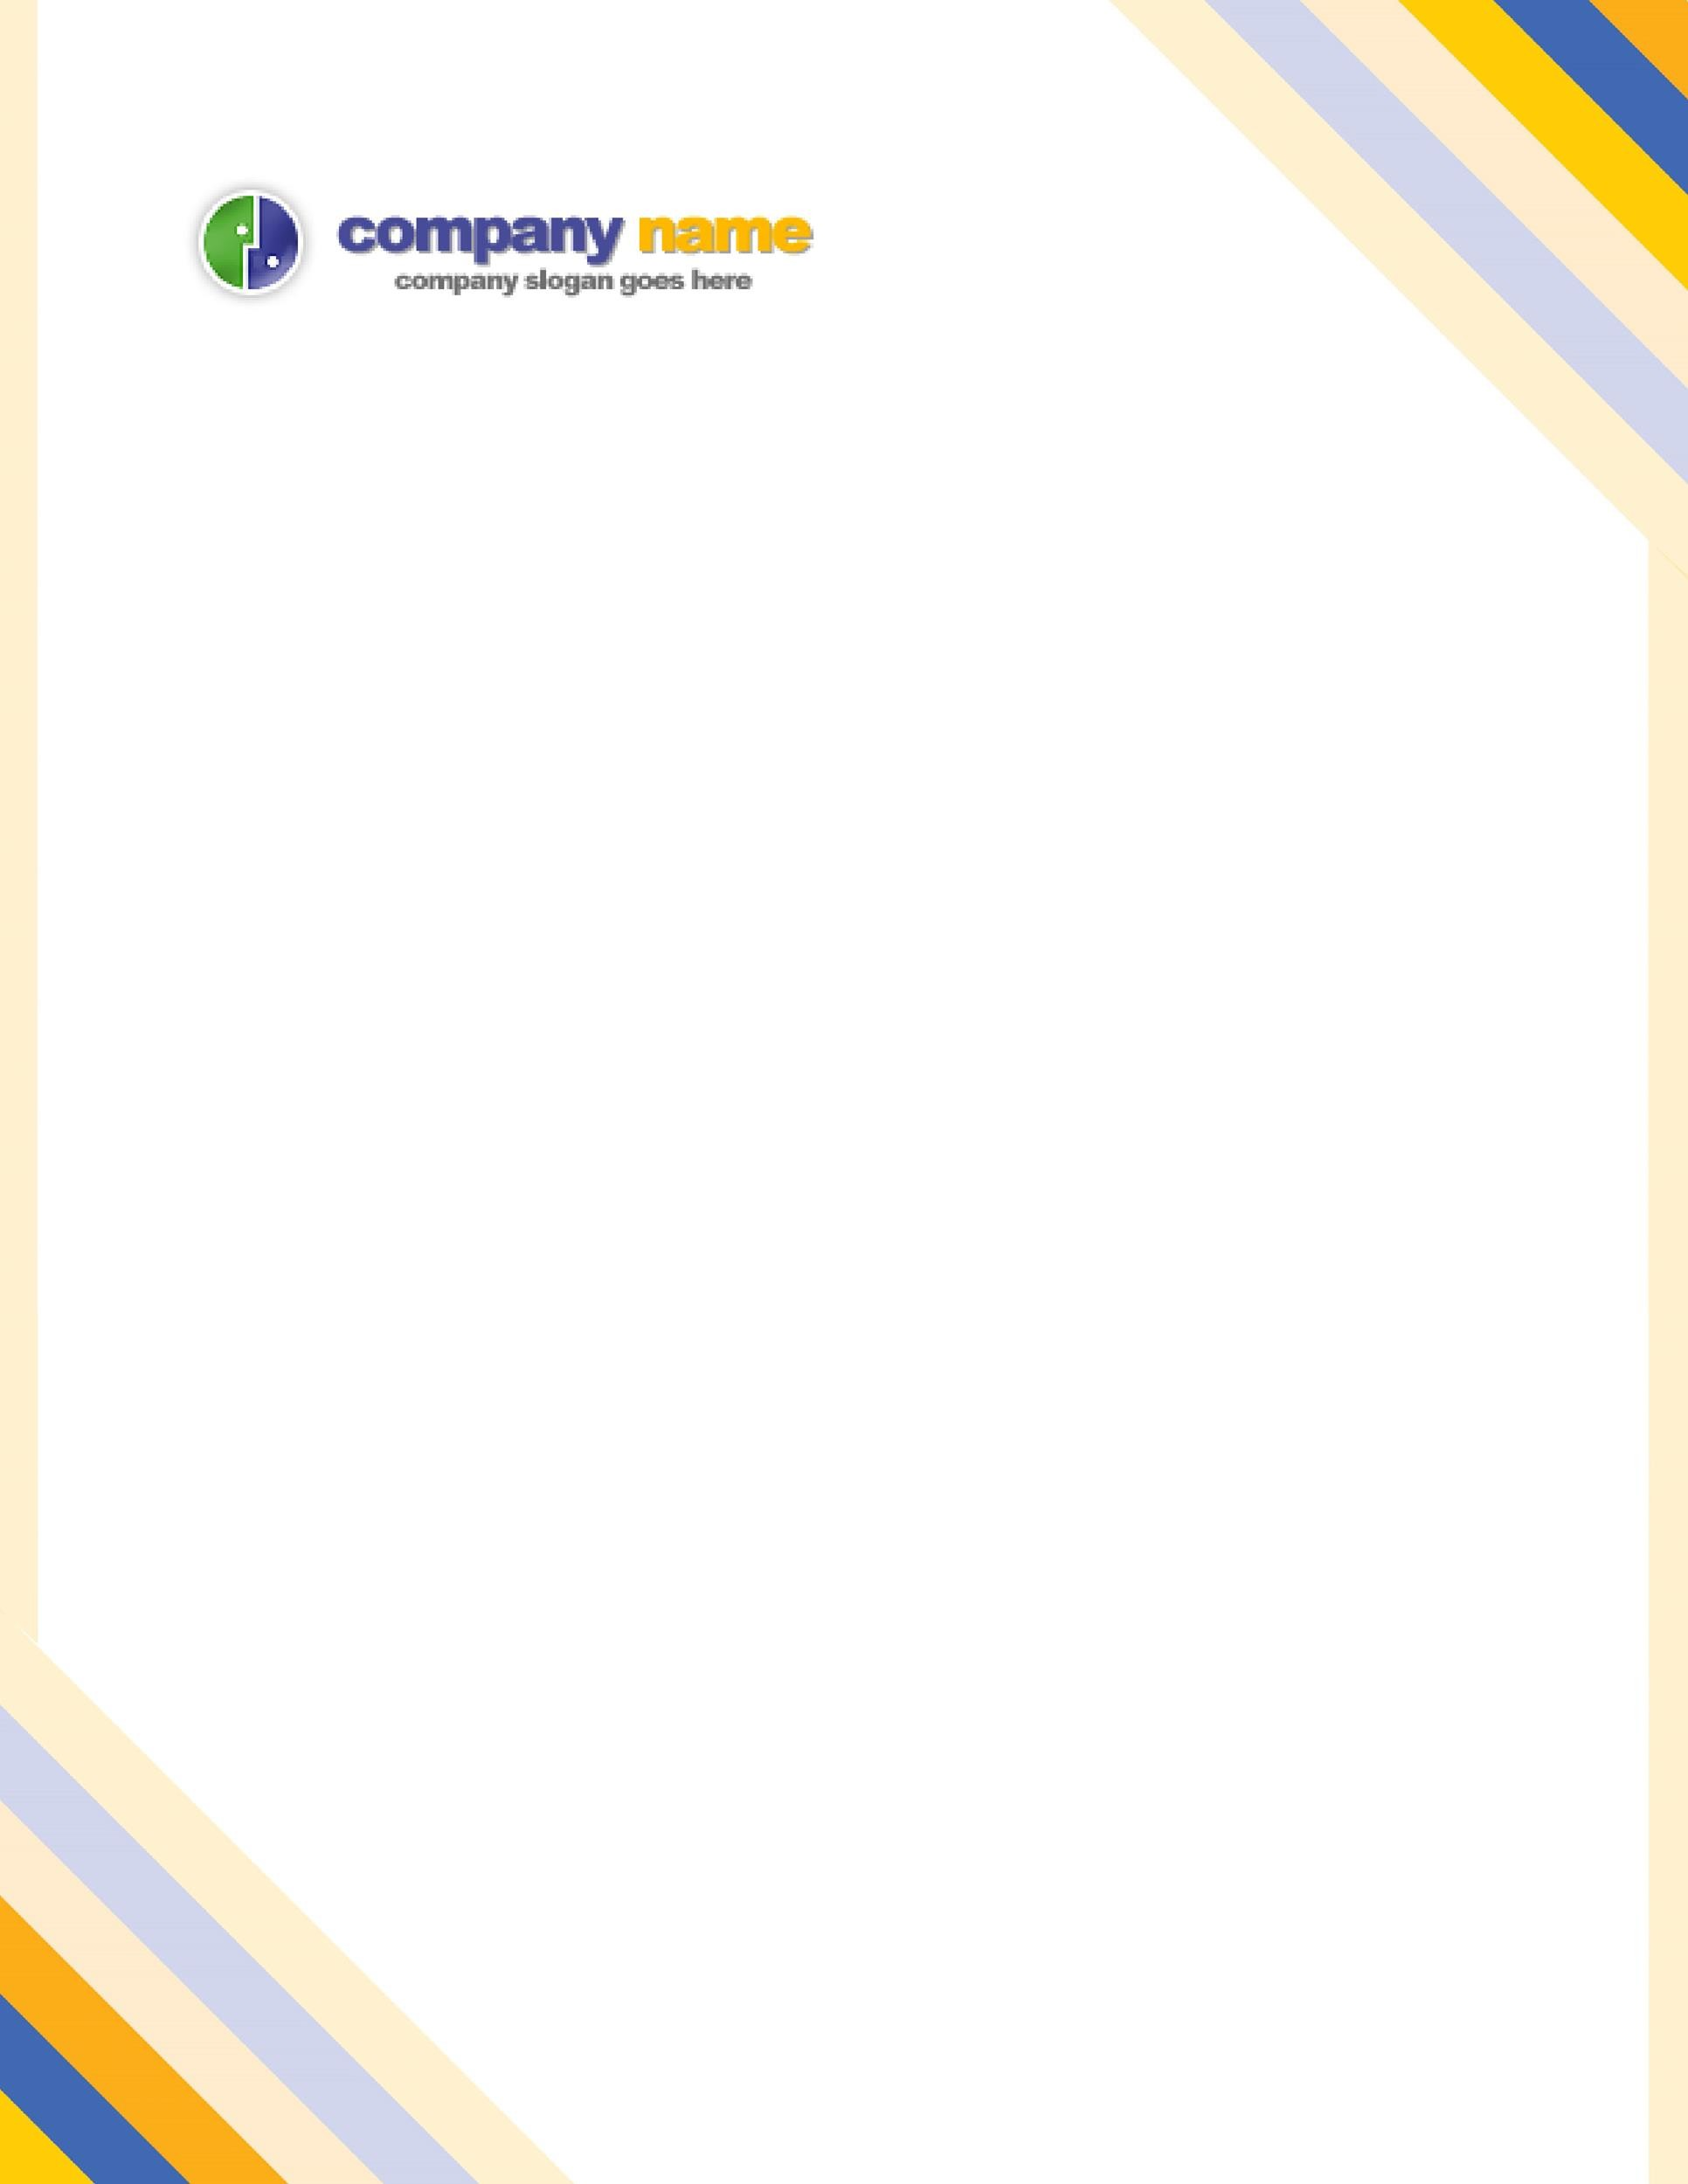 Printable Letterhead Template 21  Free Letterhead Samples